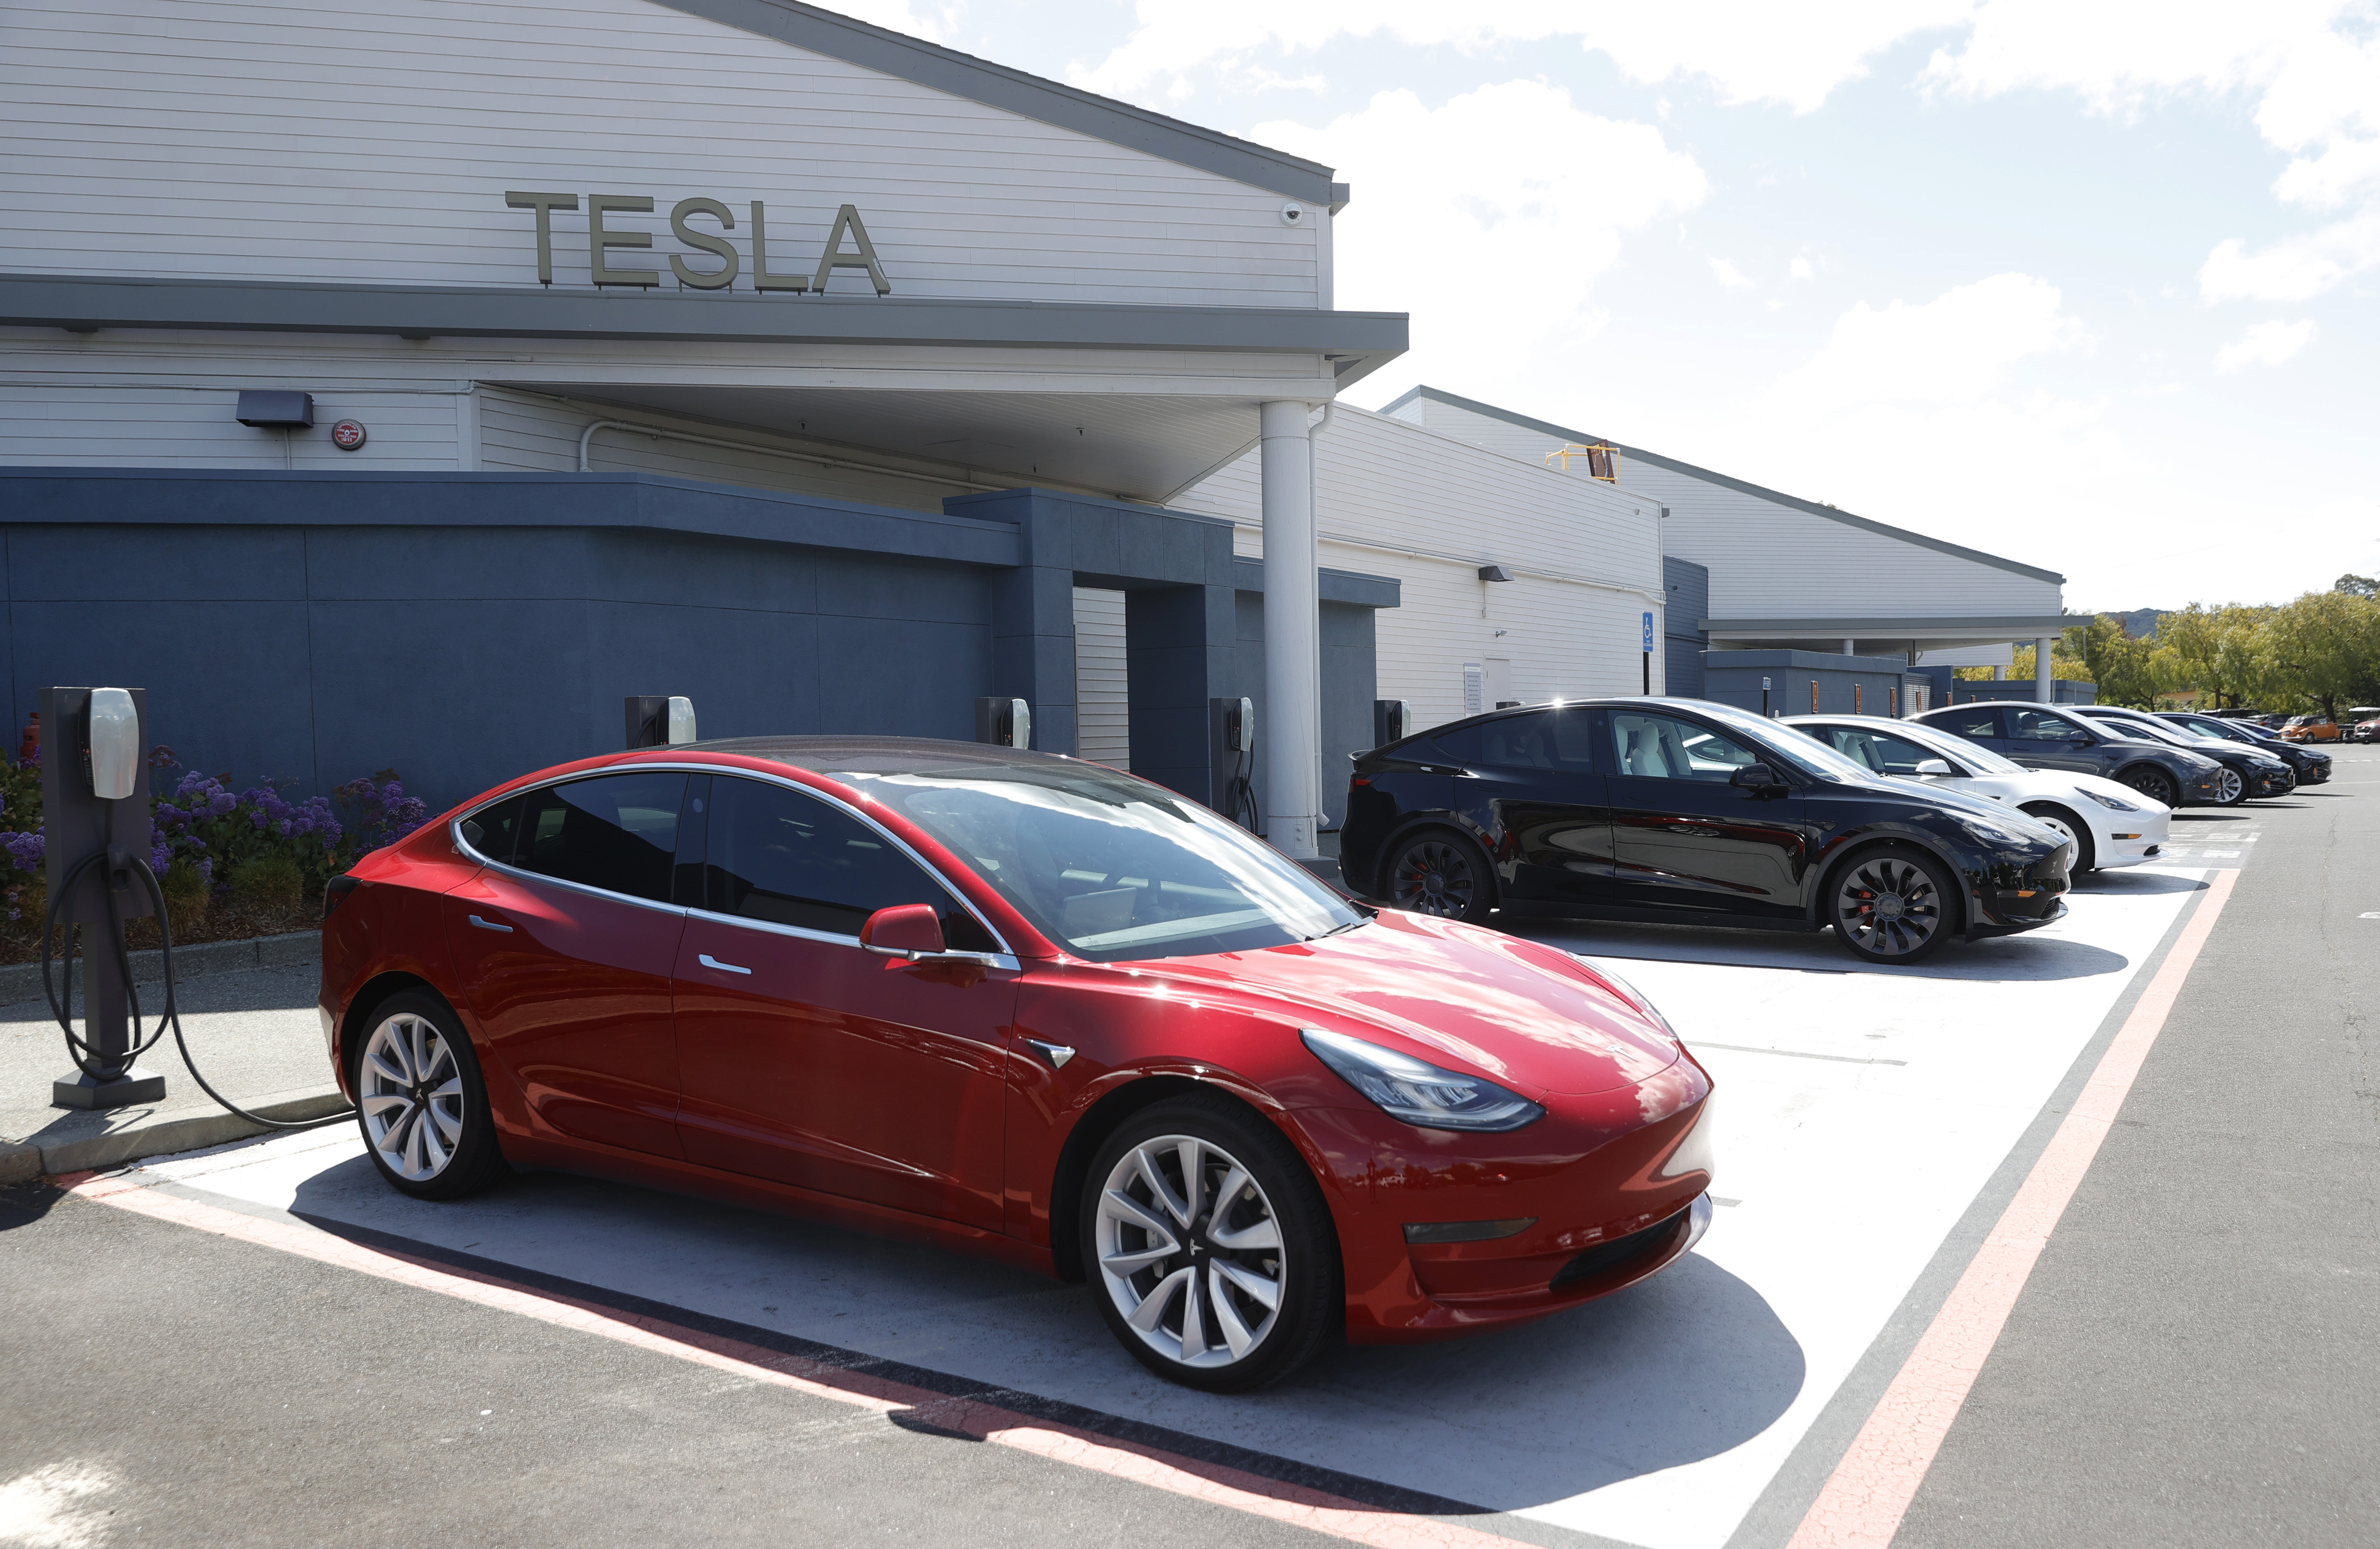 Tesla may have paid $3 to buy patents for making cleaner EV batteries